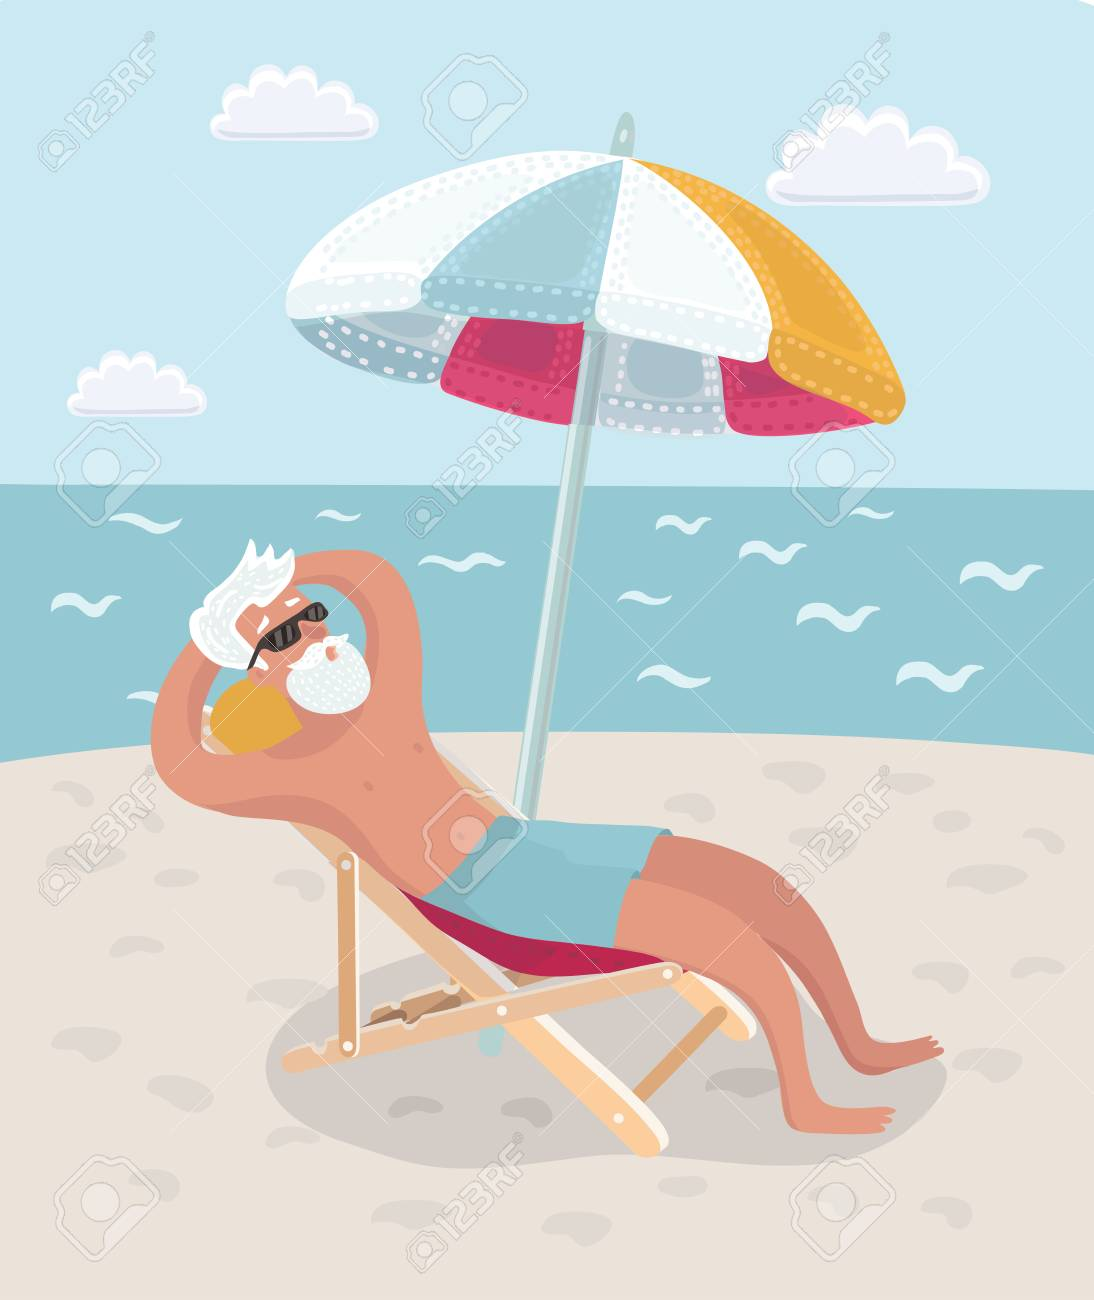 Vector Cartoon Illustration Of Retired Man On Vacation Sitting Royalty Free Cliparts Vectors And Stock Illustration Image 94064264